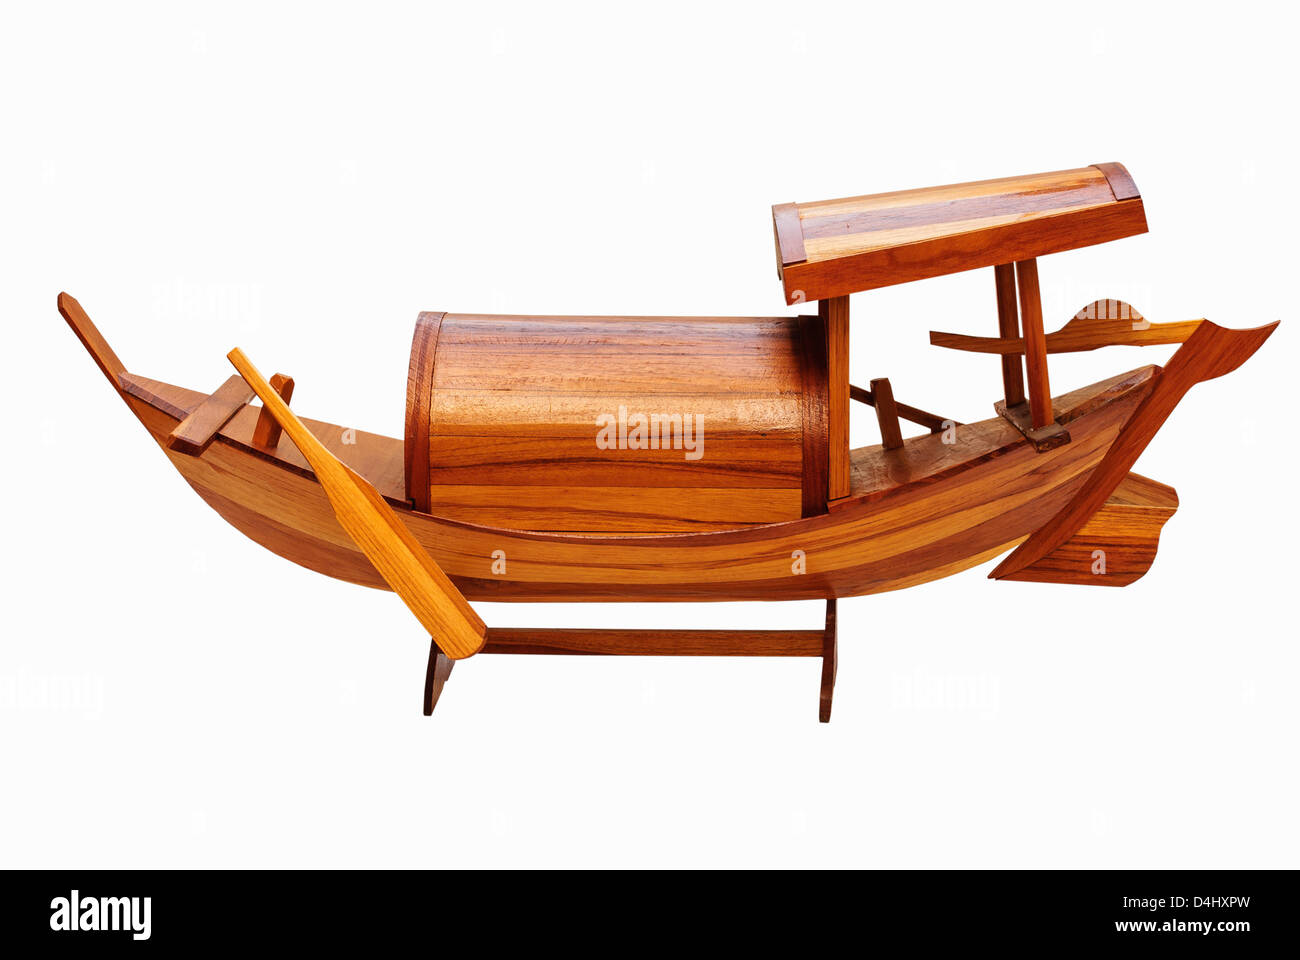 the wooden ship models Thai art and white background - Stock Image